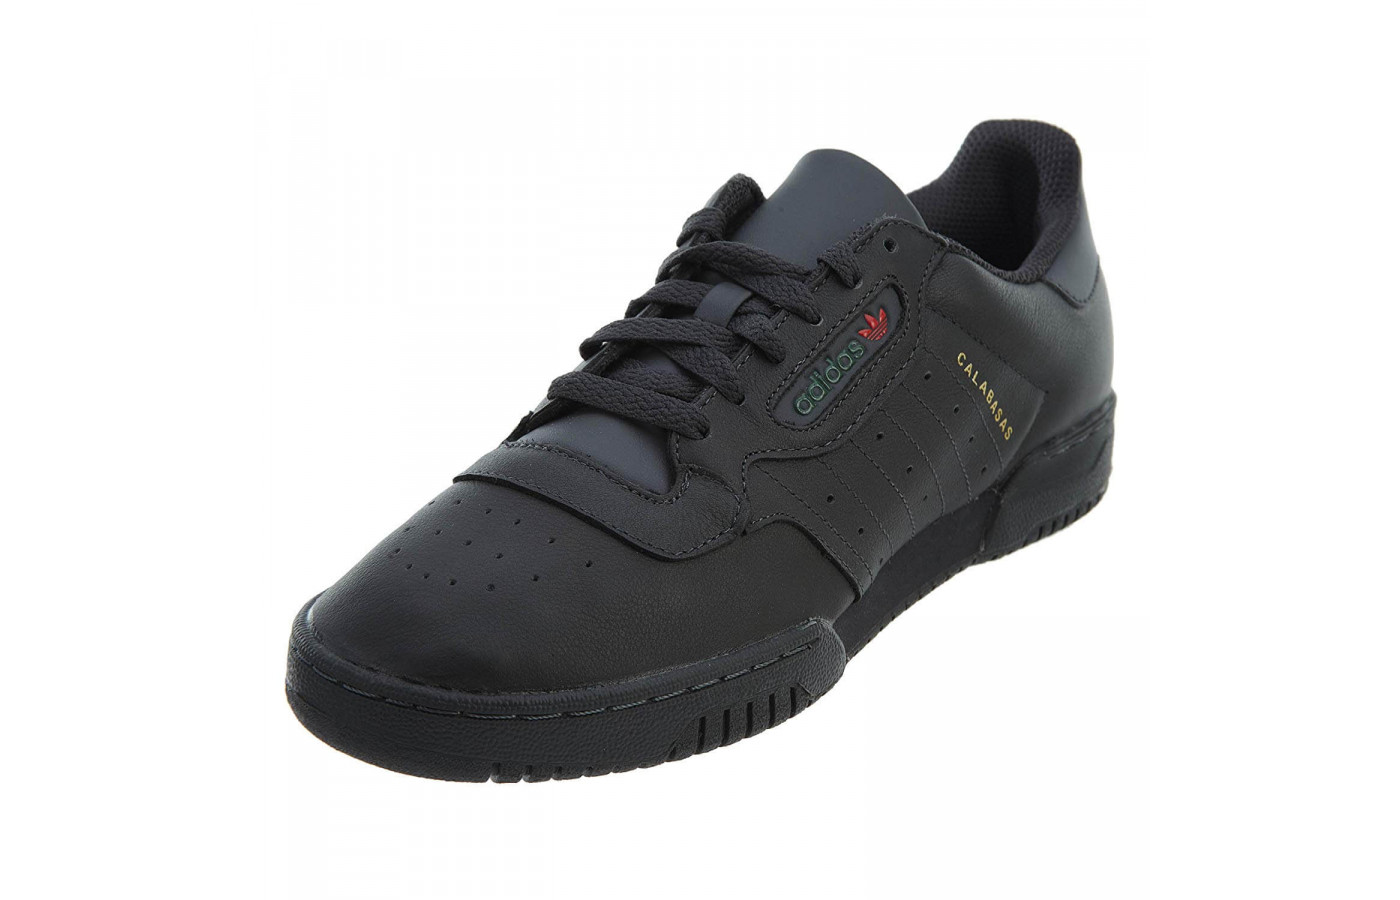 54d0f86b9ebbb Adidas Yeezy Powerphase - To Buy or Not in May 2019